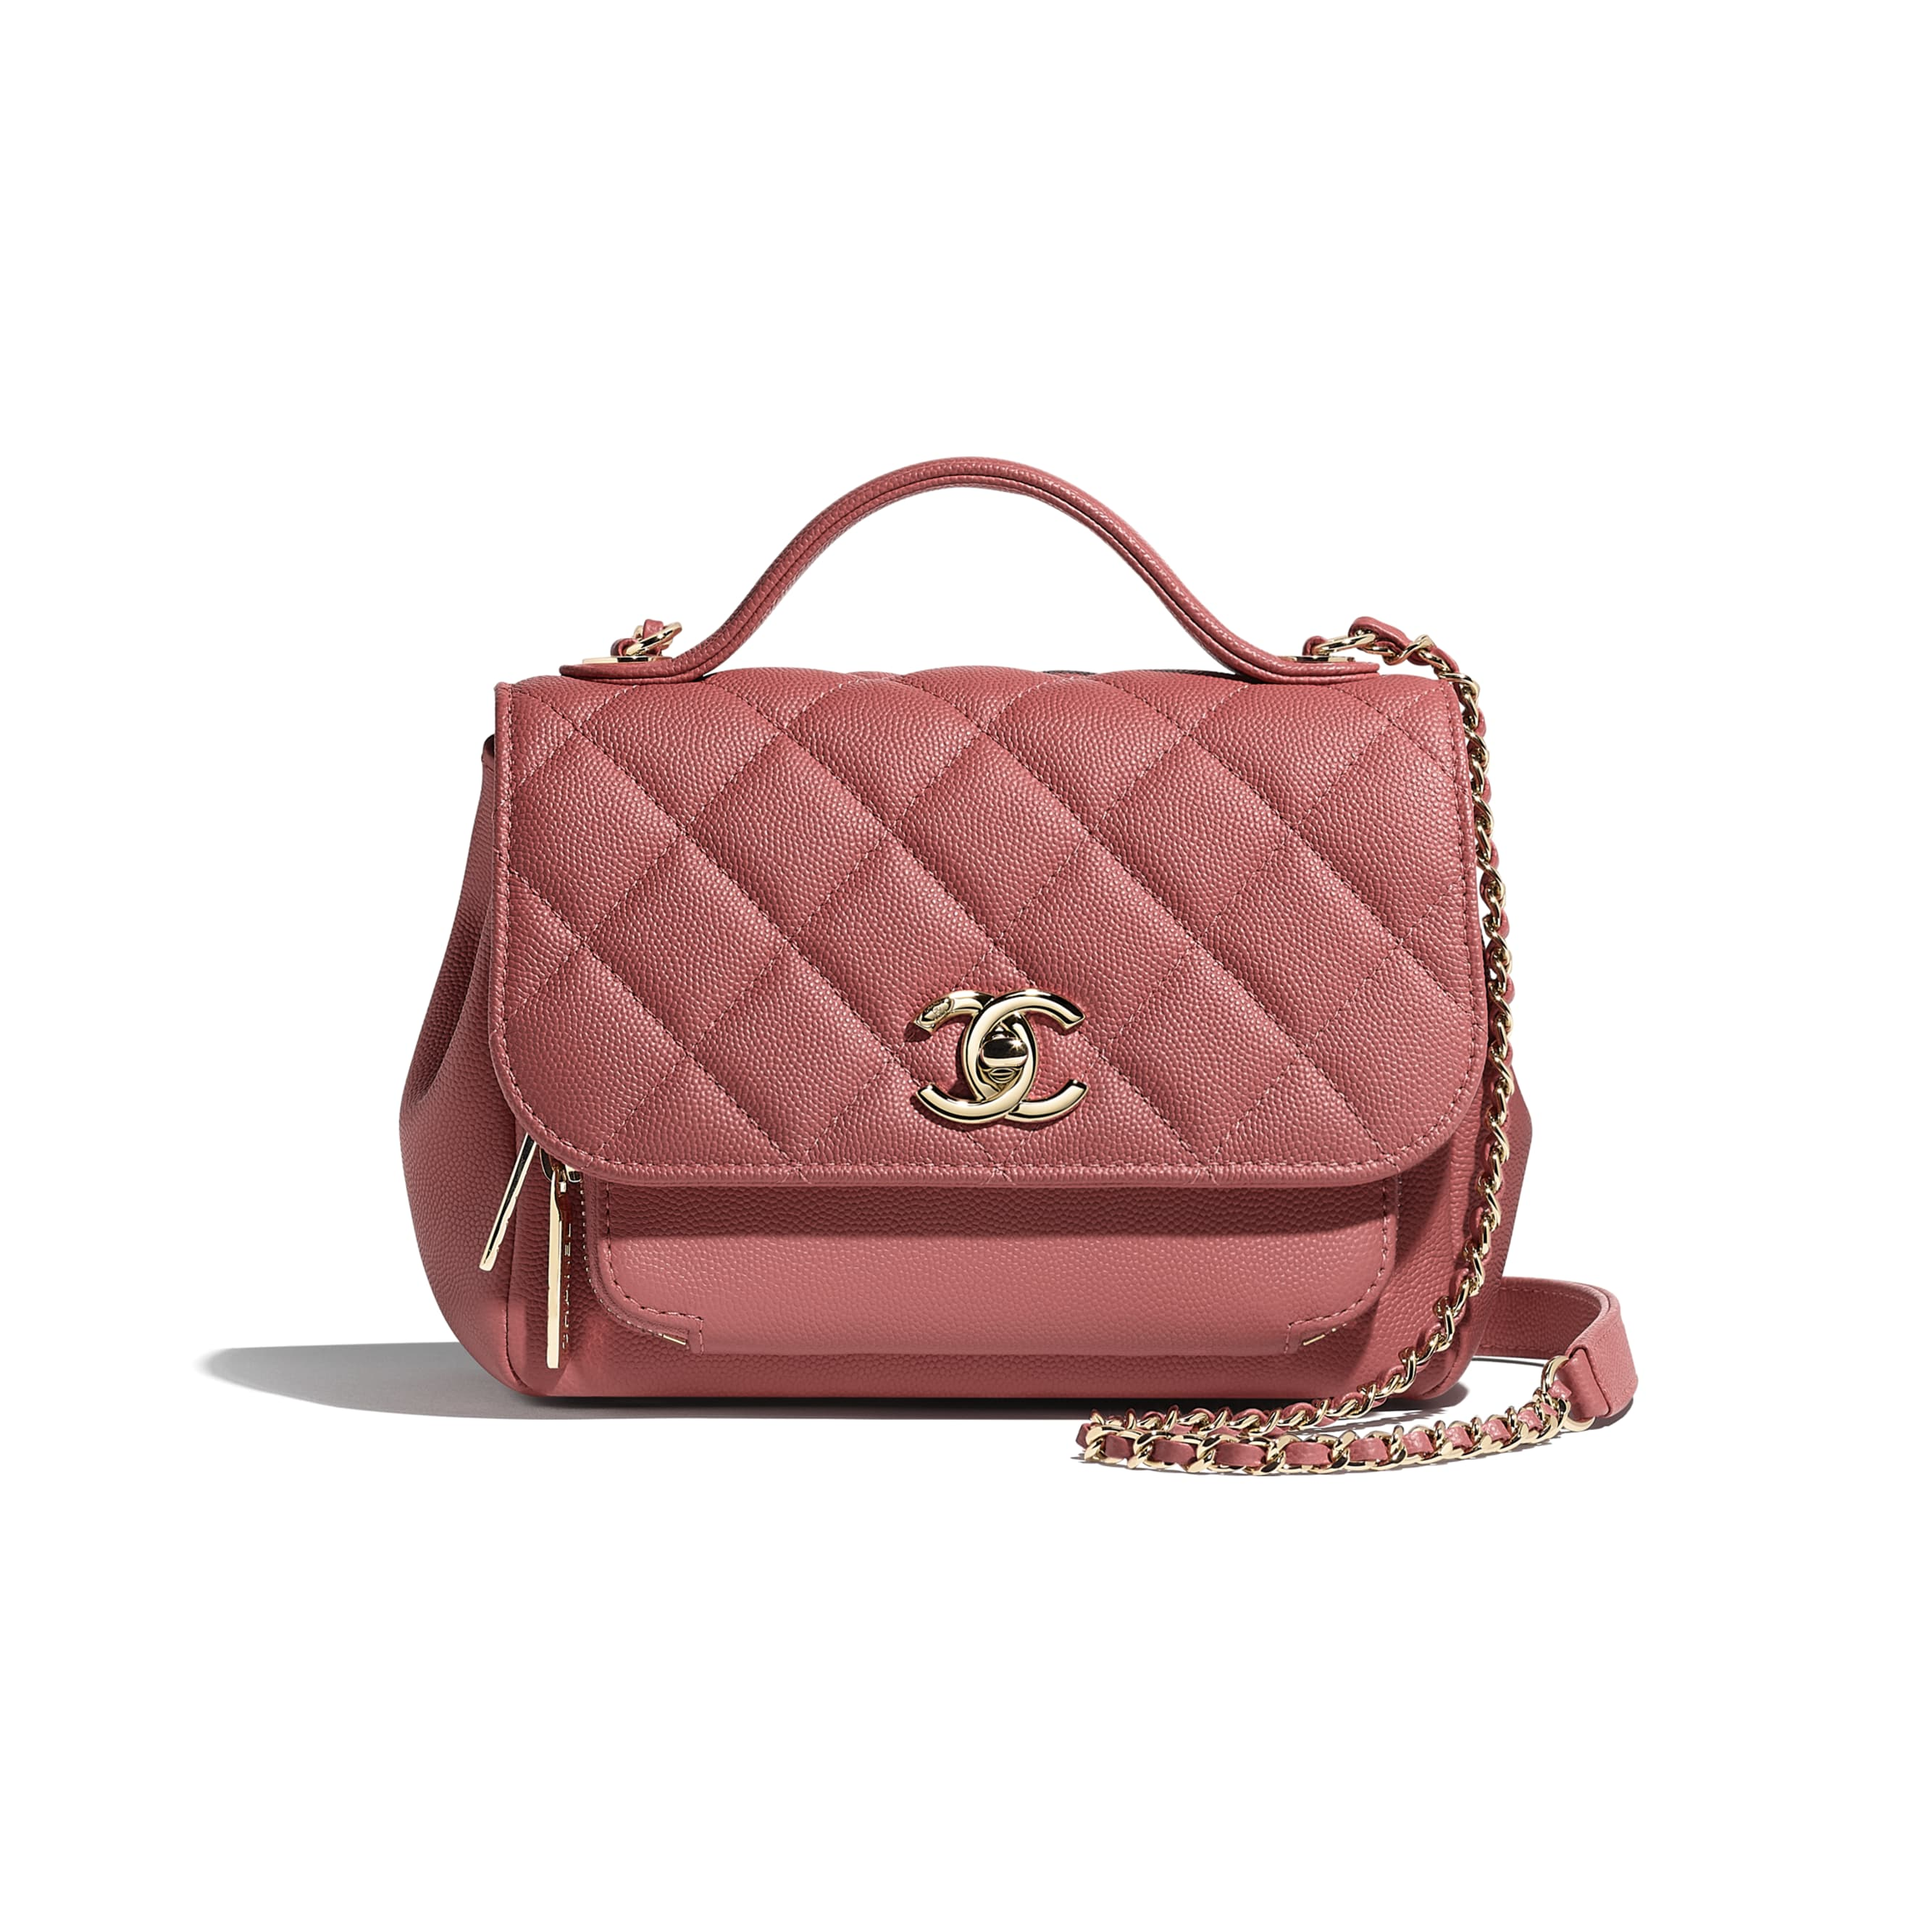 Flap Bag with Top Handle - Pink - Grained Calfskin & Gold-Tone Metal - Default view - see standard sized version